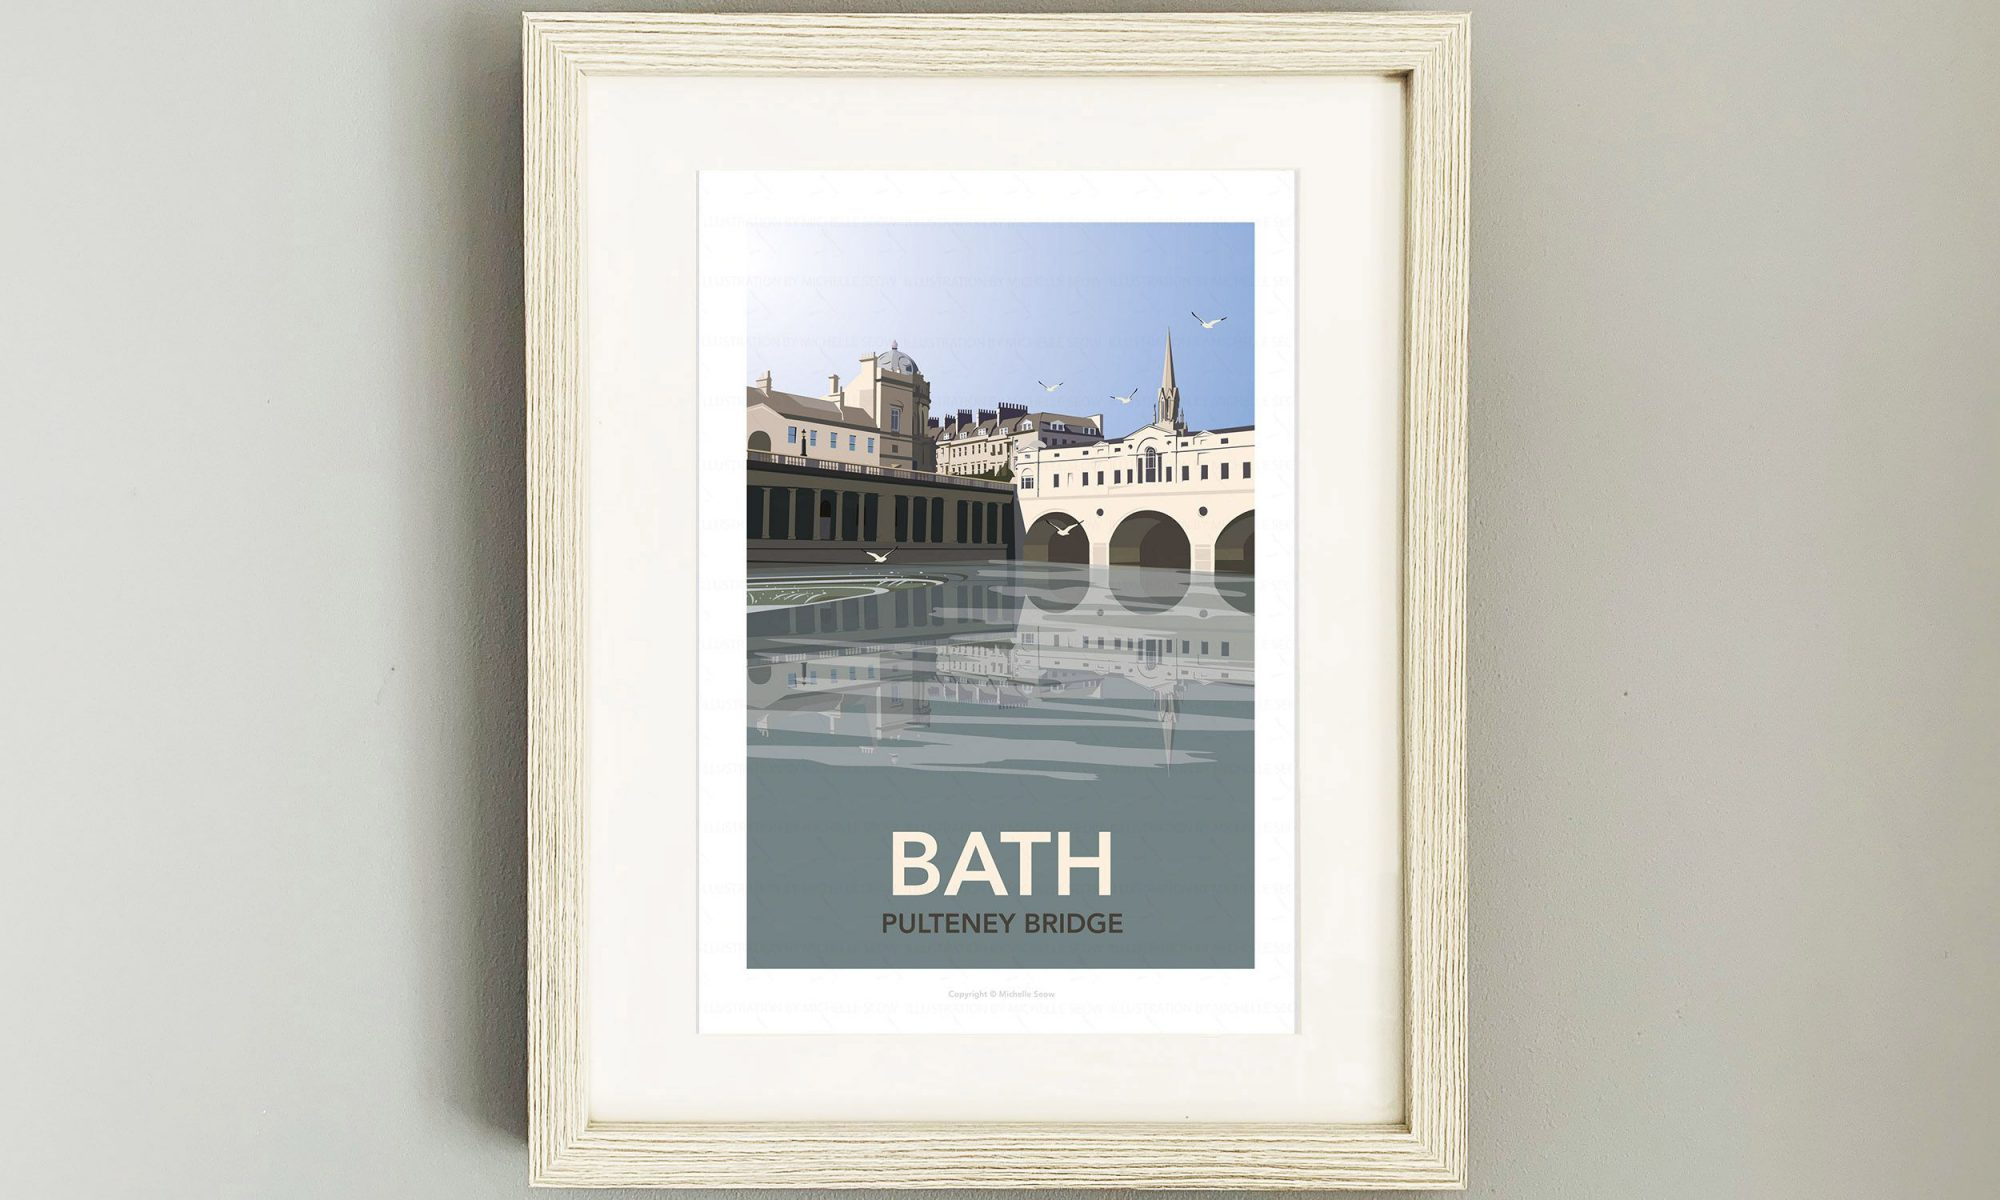 Framed travel poster of Bath's Pulteney Bridge